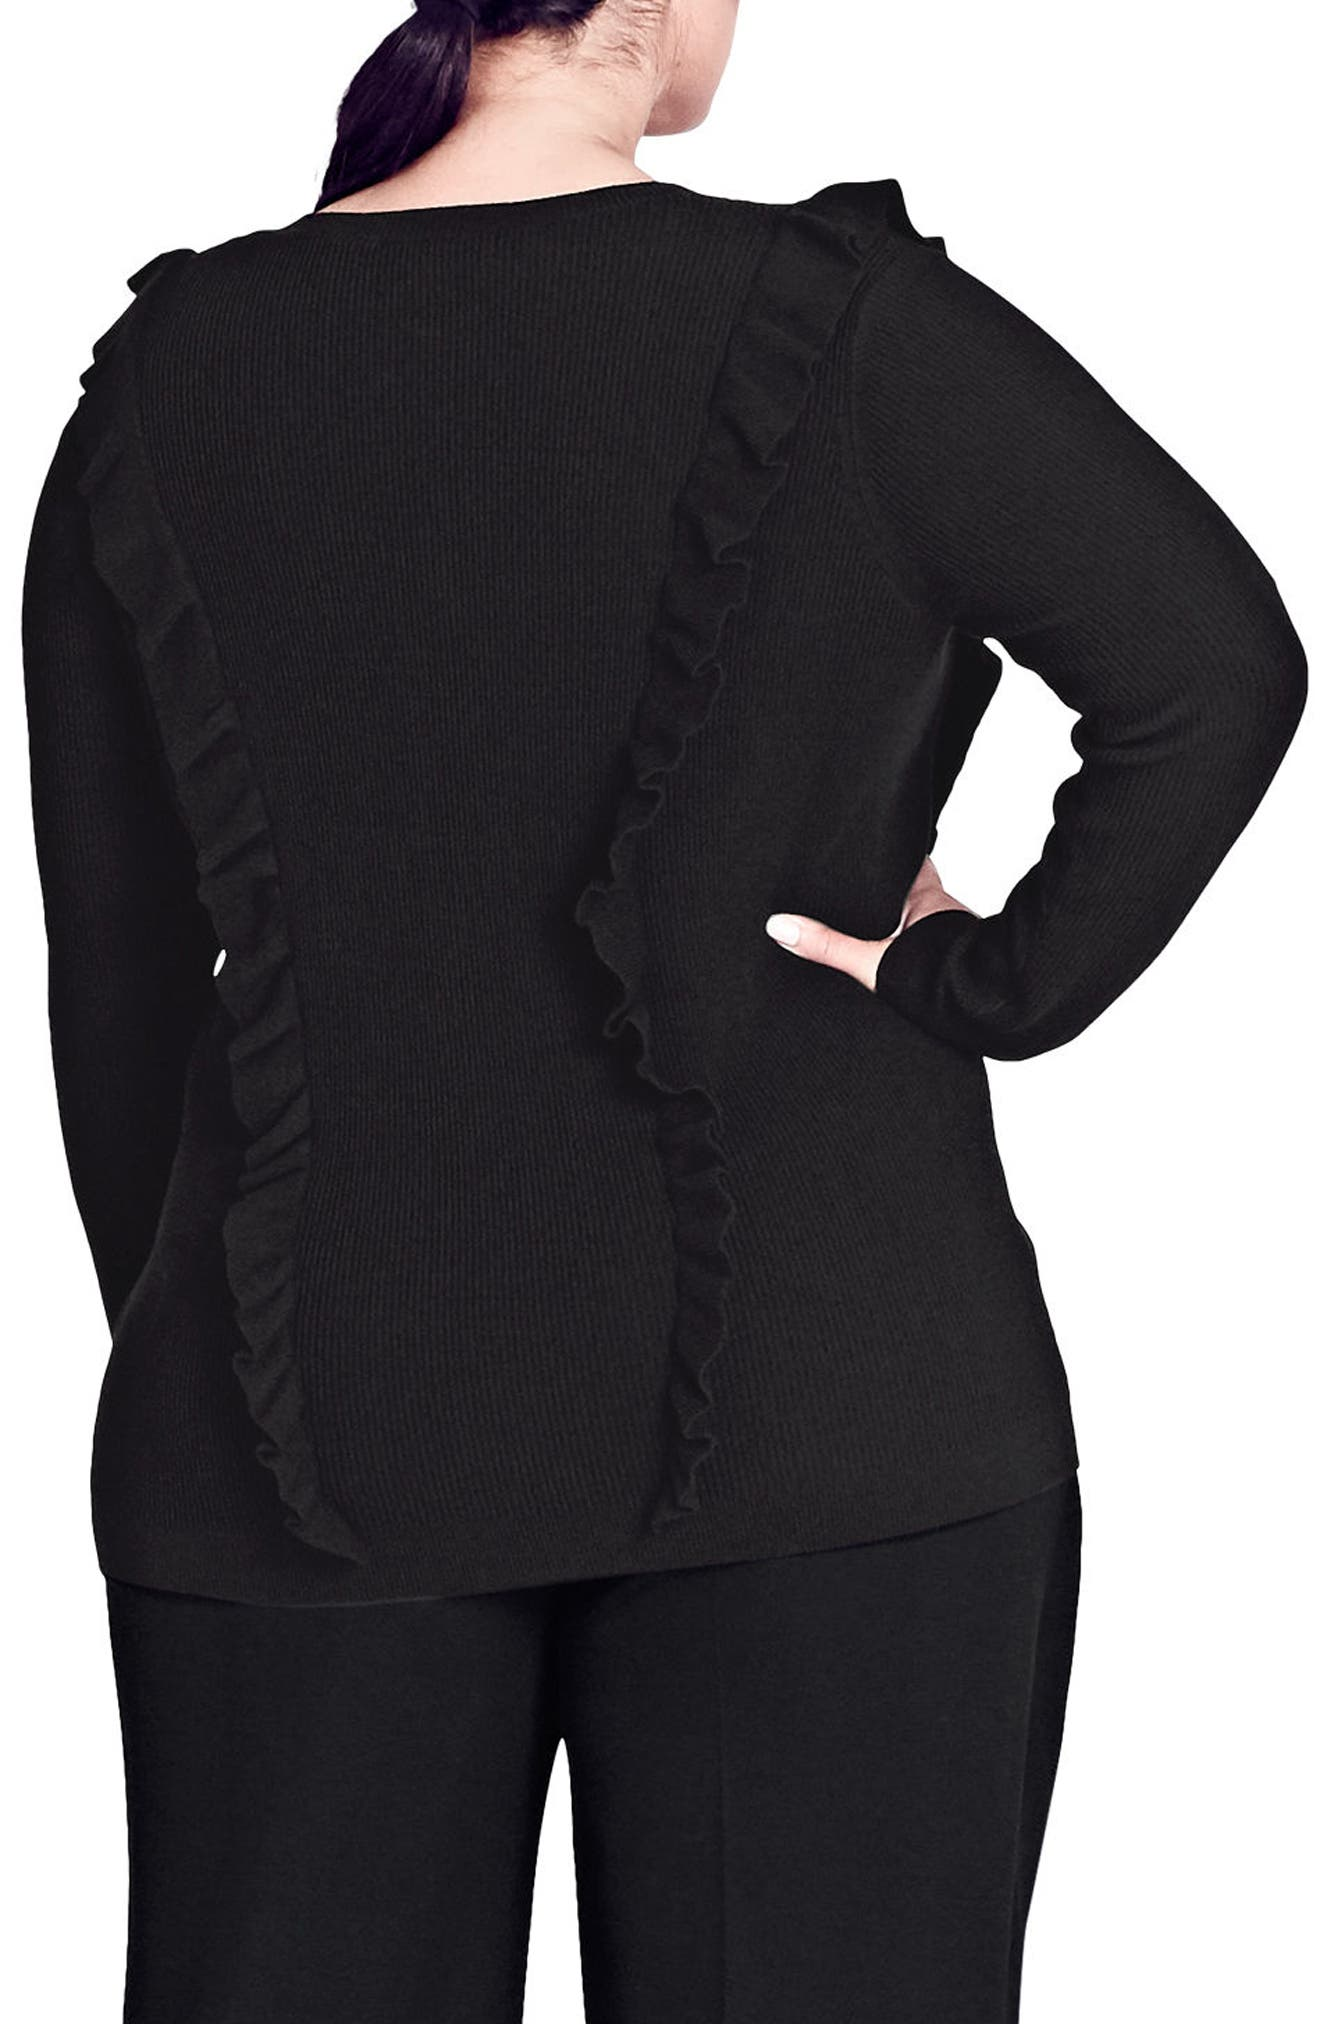 Romantic Ruffle Trim Sweater,                             Alternate thumbnail 2, color,                             Black